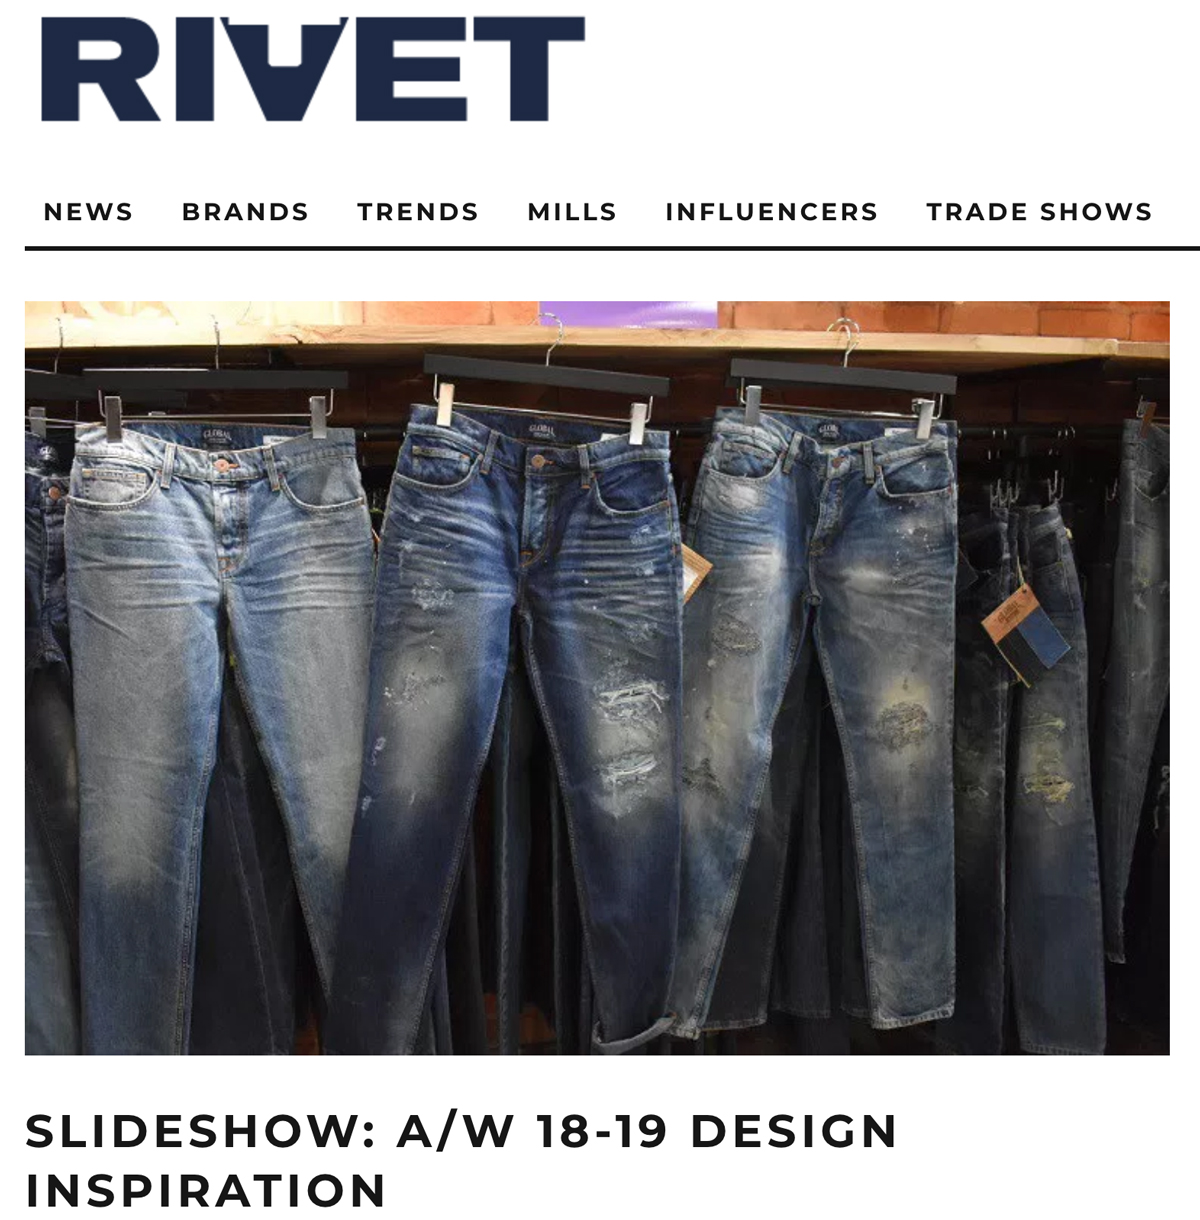 Global Denim® dictates trends for A/W 18-19